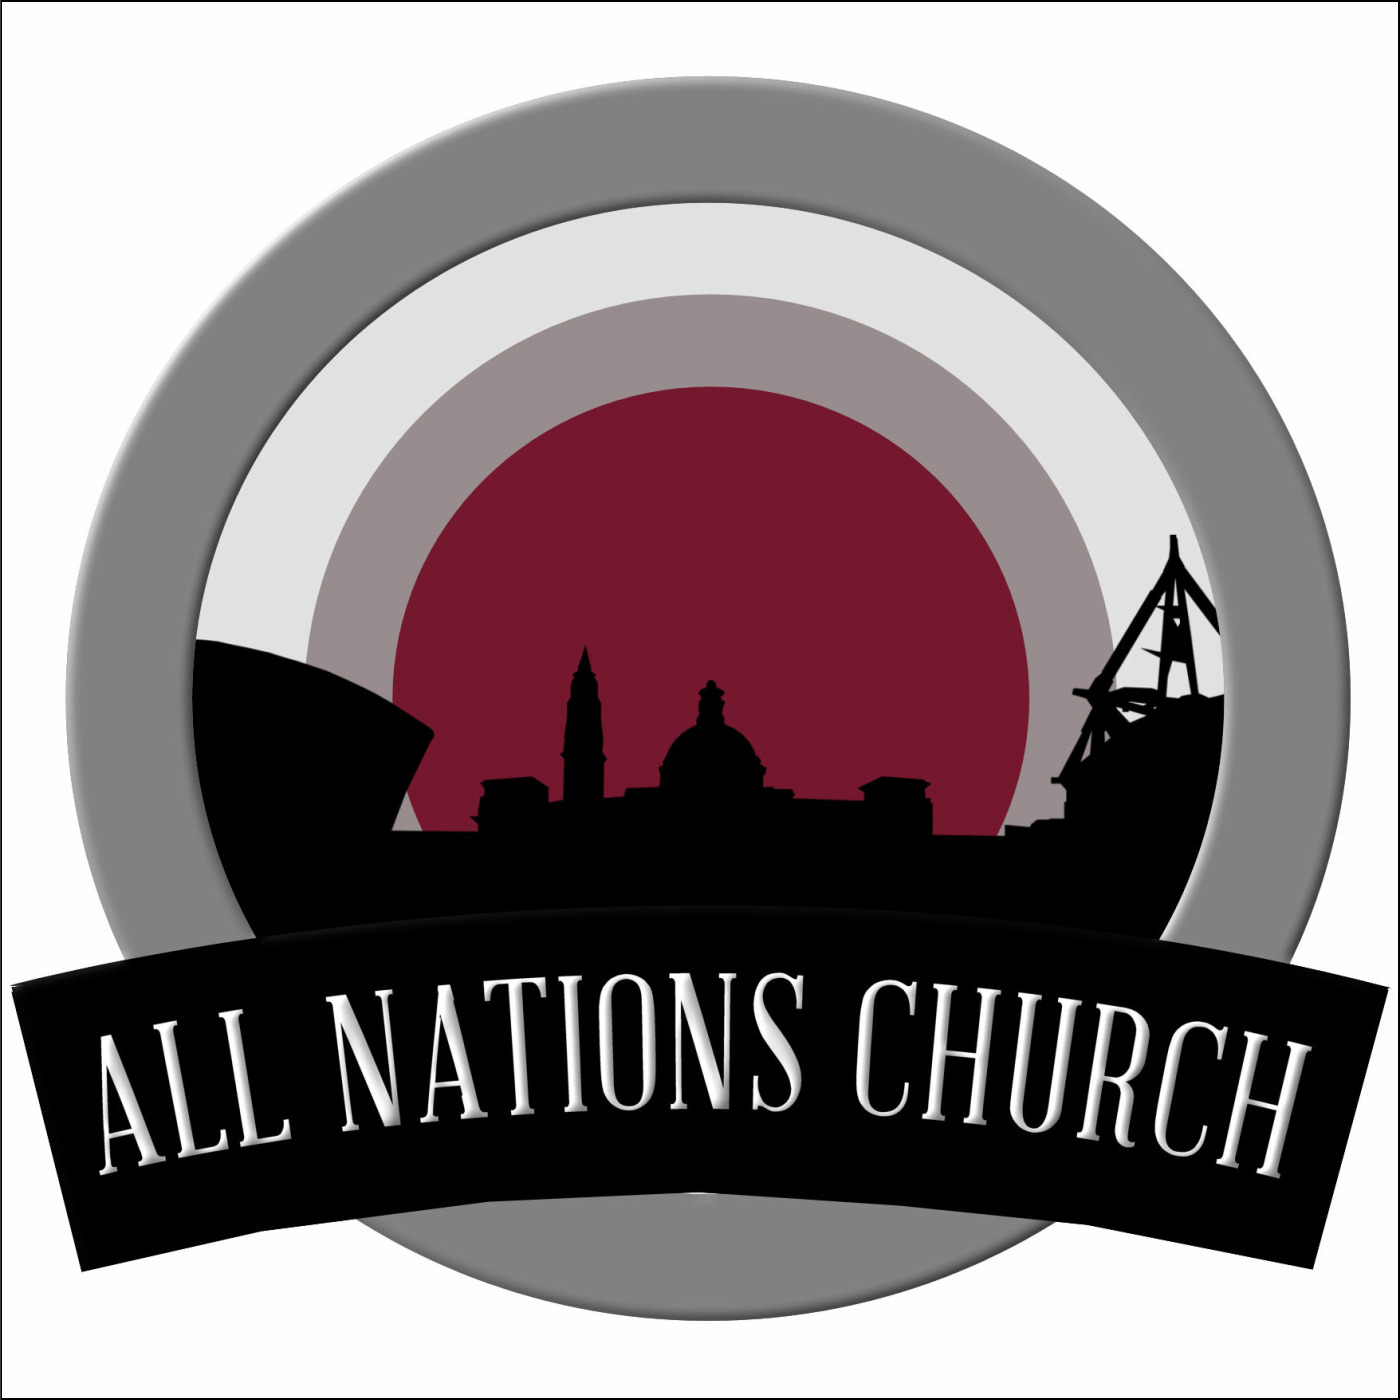 All Nations Church - ALL NEW!